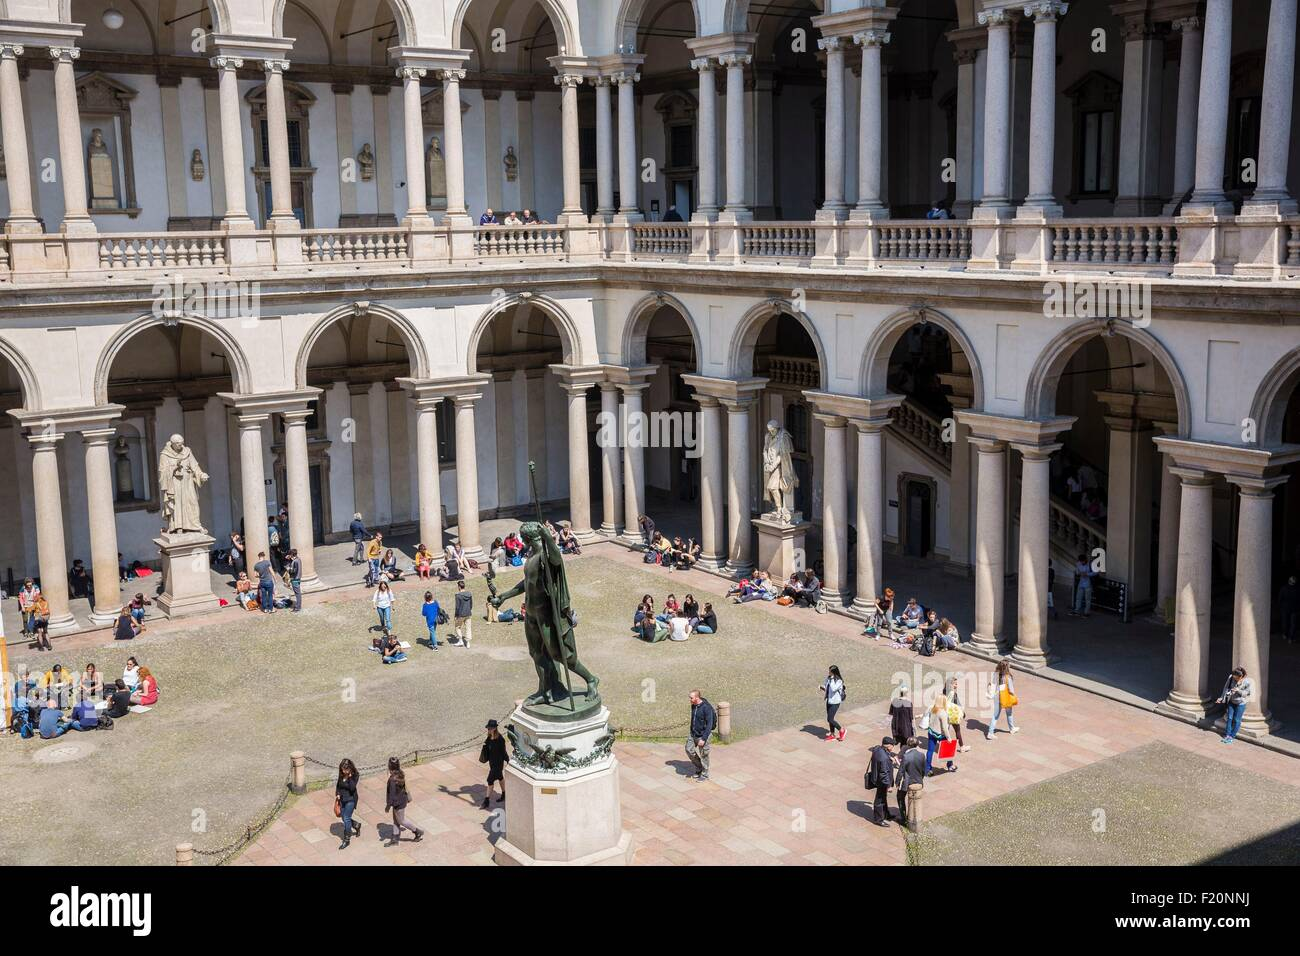 Italy, Lombardy, Milan, the courtyard of Brera Pinacoteca, fine Arts Museum, in the middle the statue of Napoleon - Stock Image